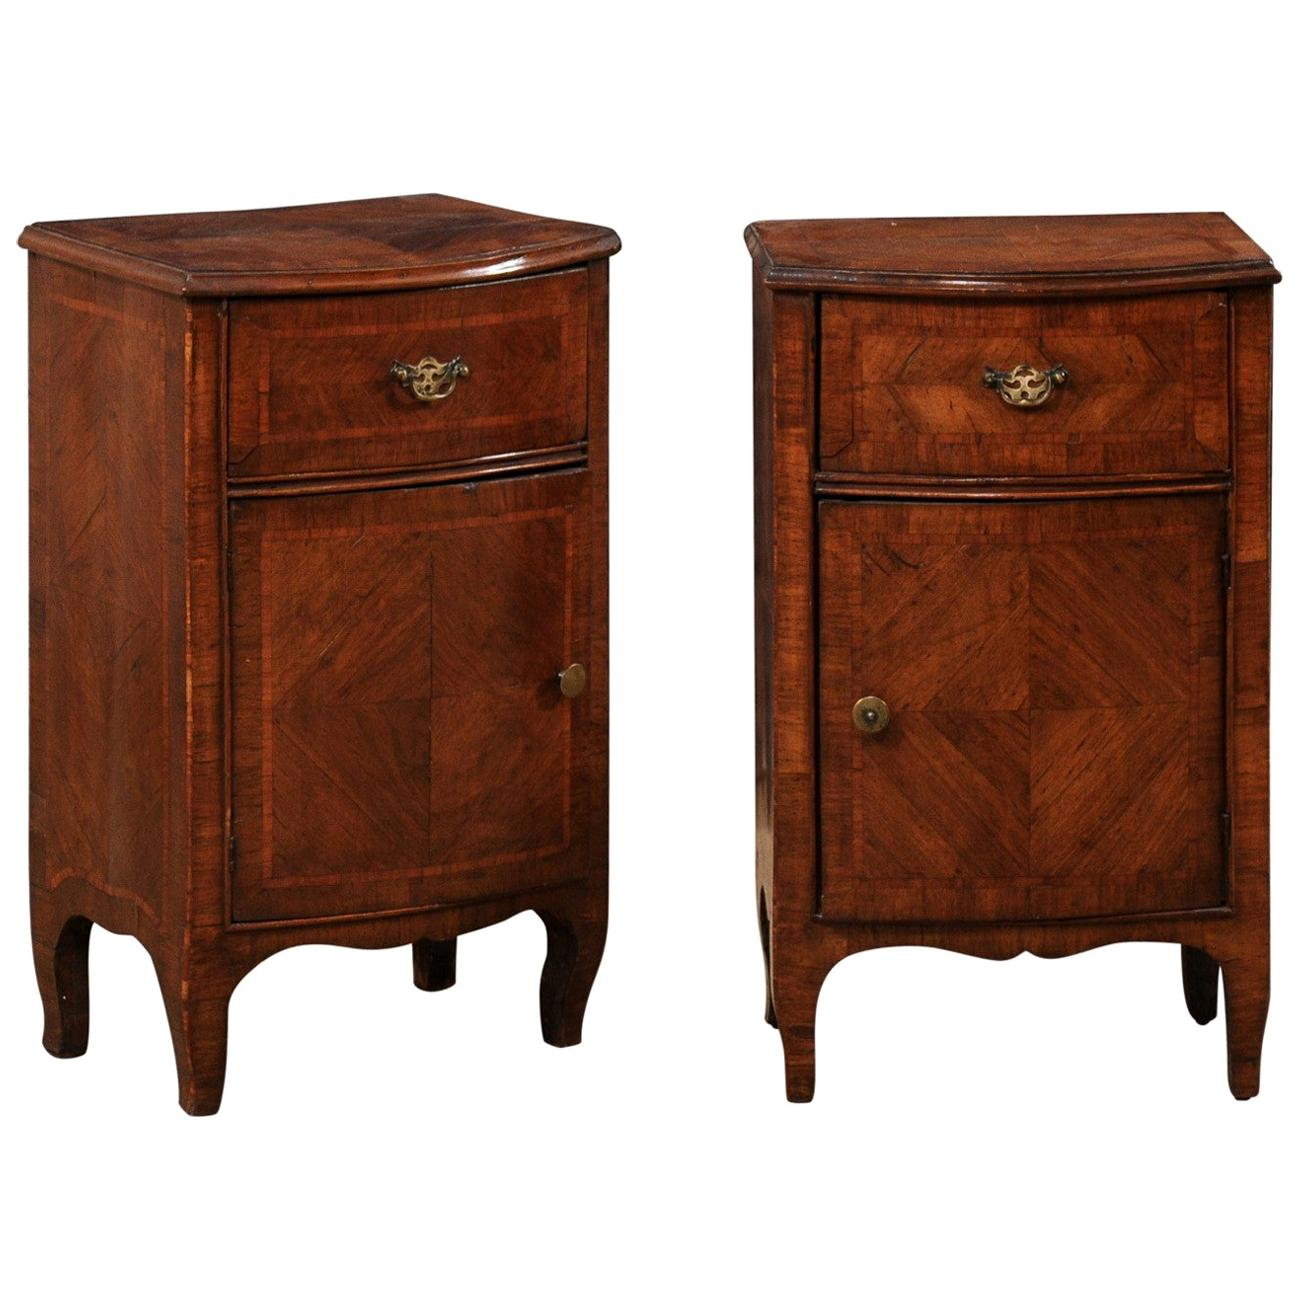 Italian Pair of Petite-Sized, Bow-Front Side Chests, Turn of the 18/19th Century